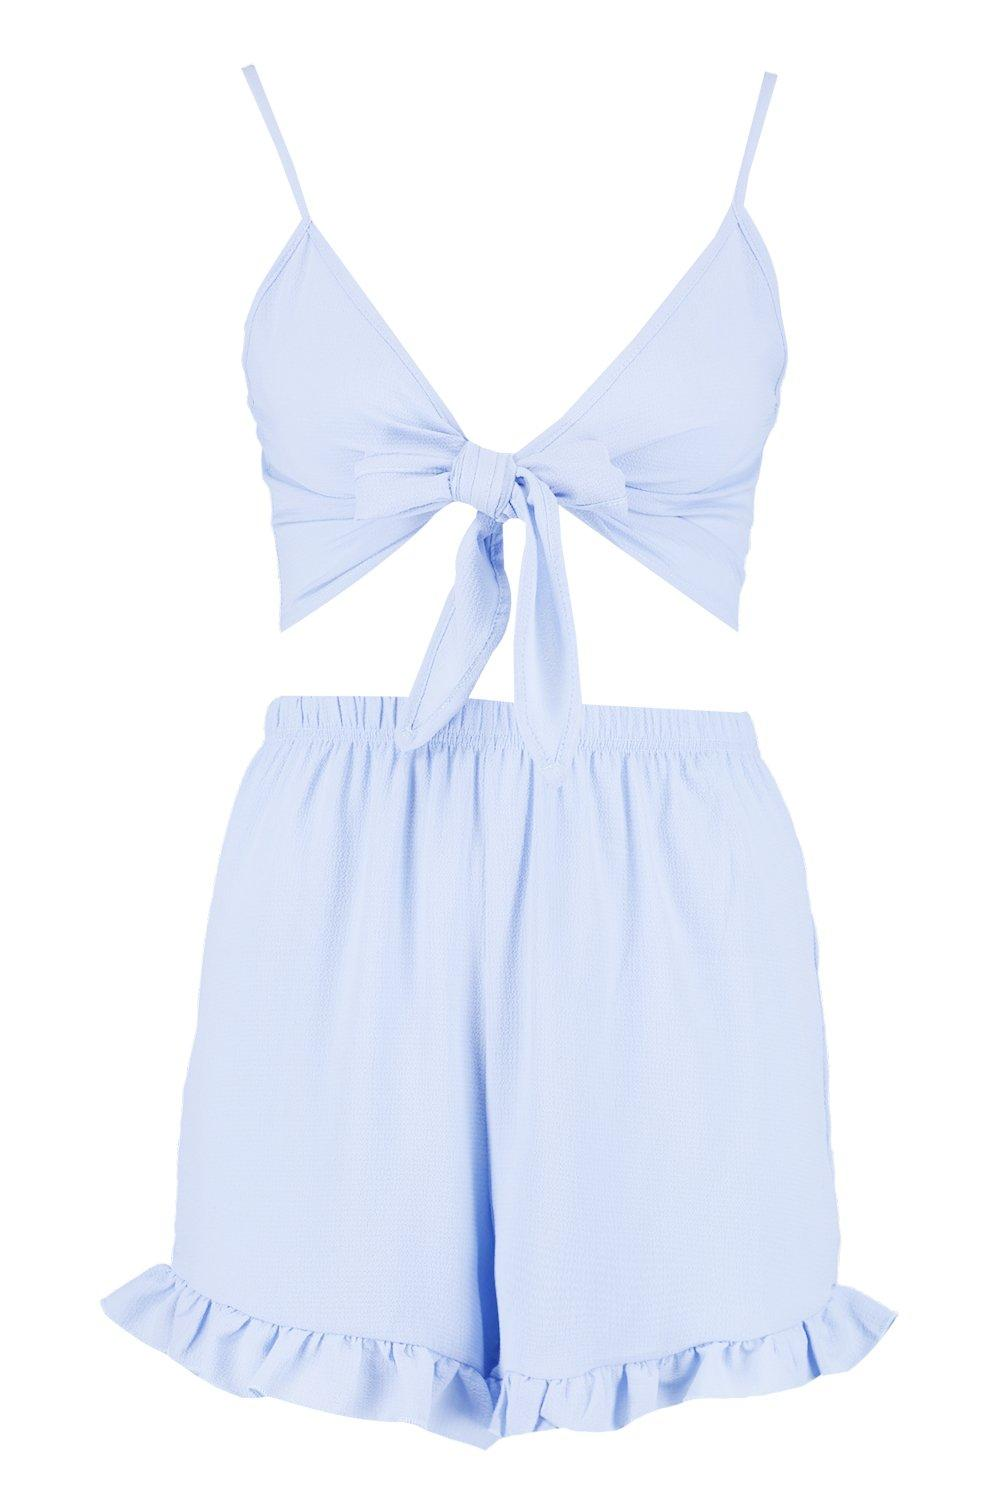 Co ord Tall Front Tie Top amp; Shorts blue cornflower xwwXTPq7